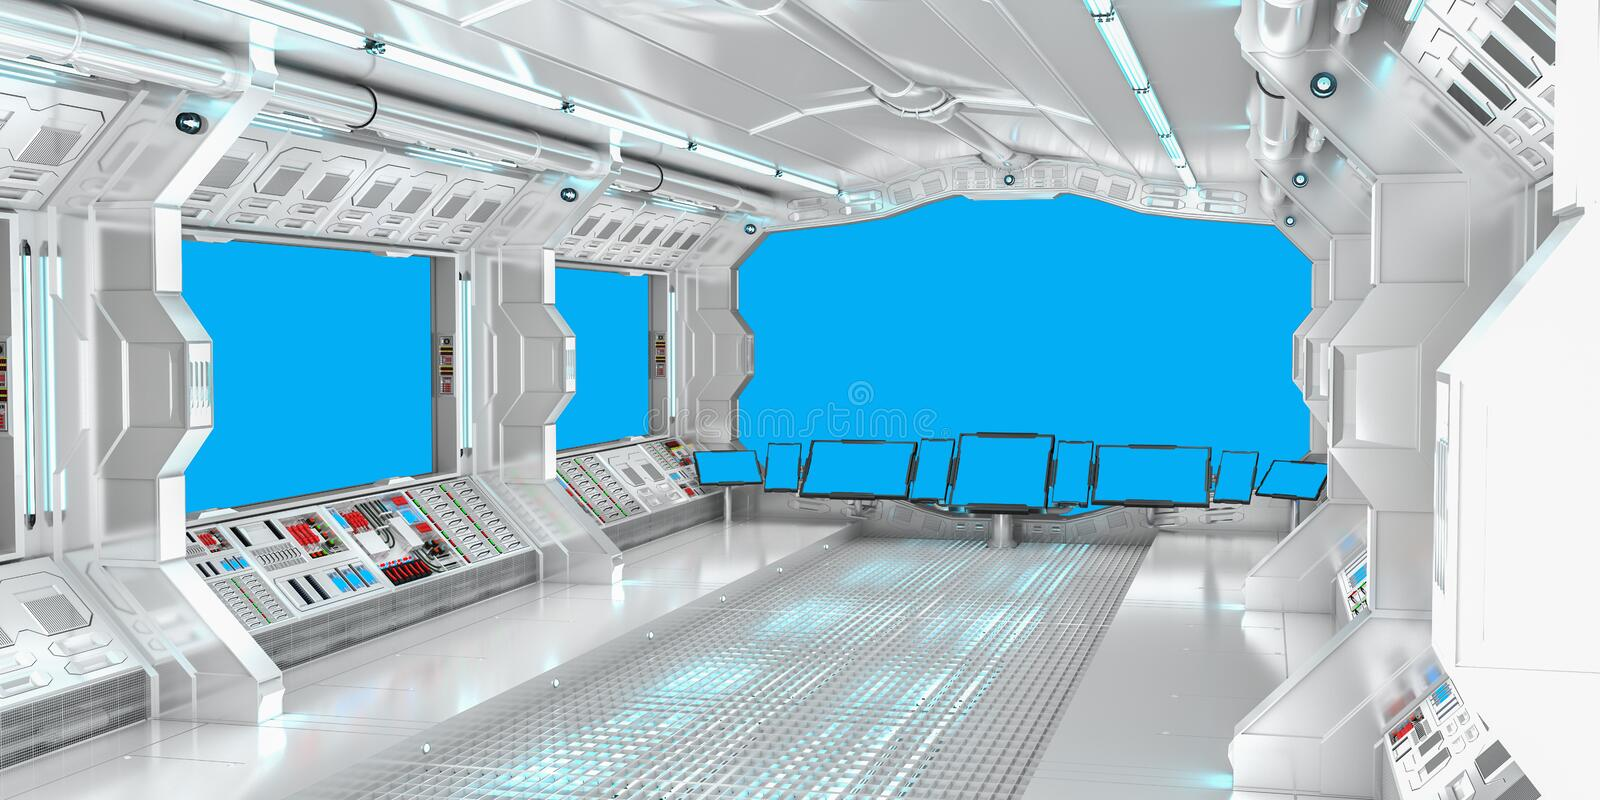 Spaceship interior with view on blue windows 3D rendering vector illustration